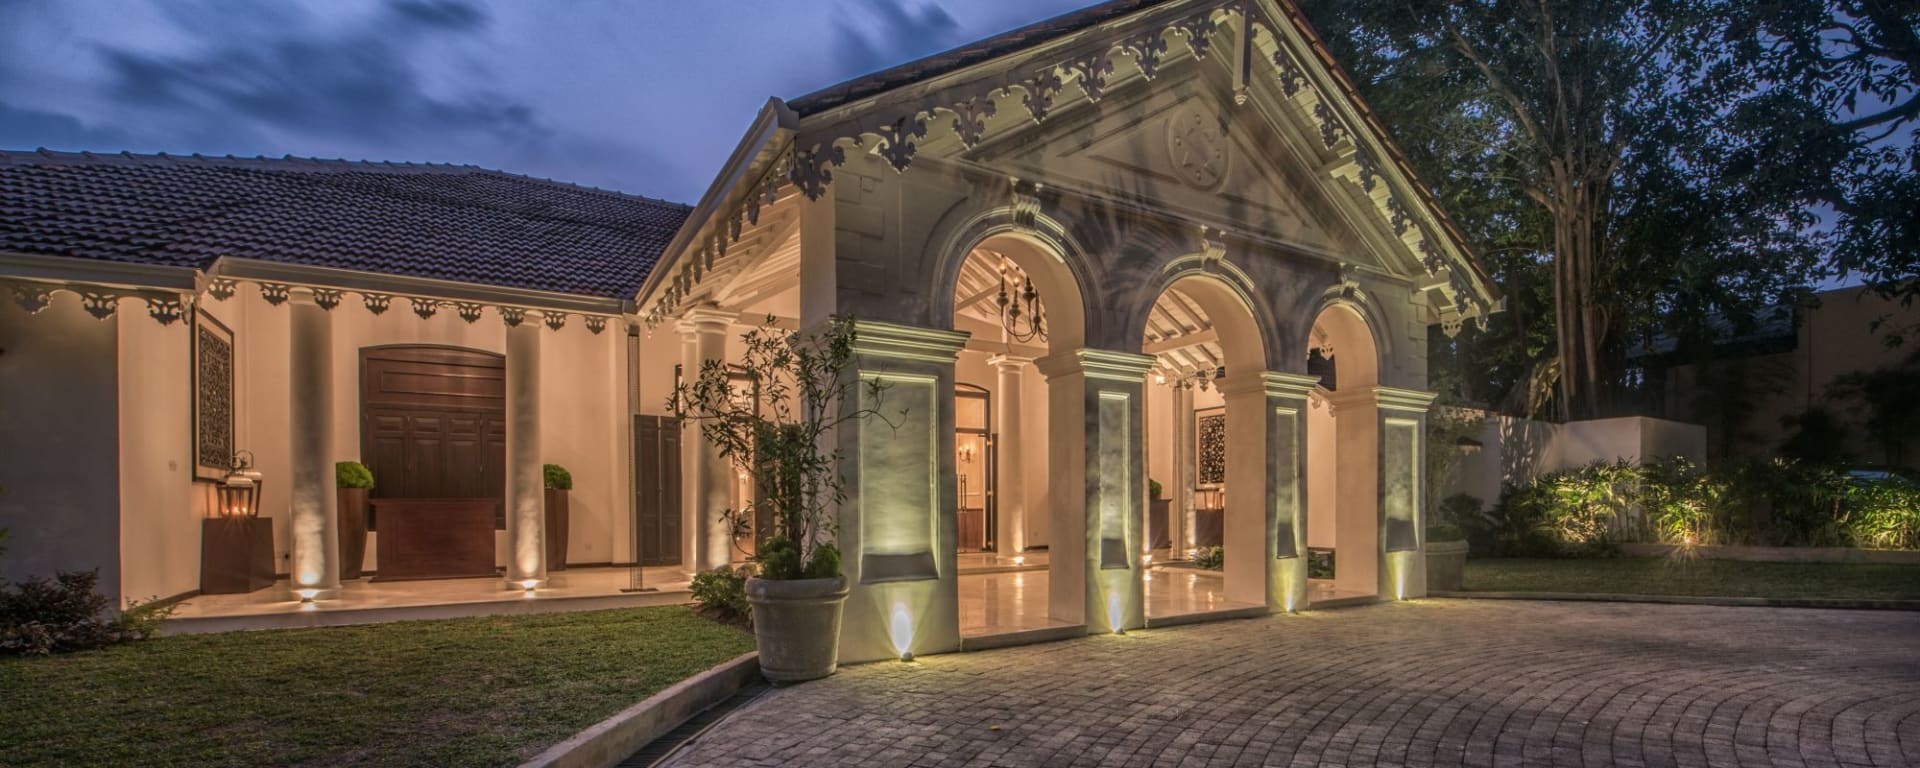 Residence by Uga Escapes in Colombo: Entrance